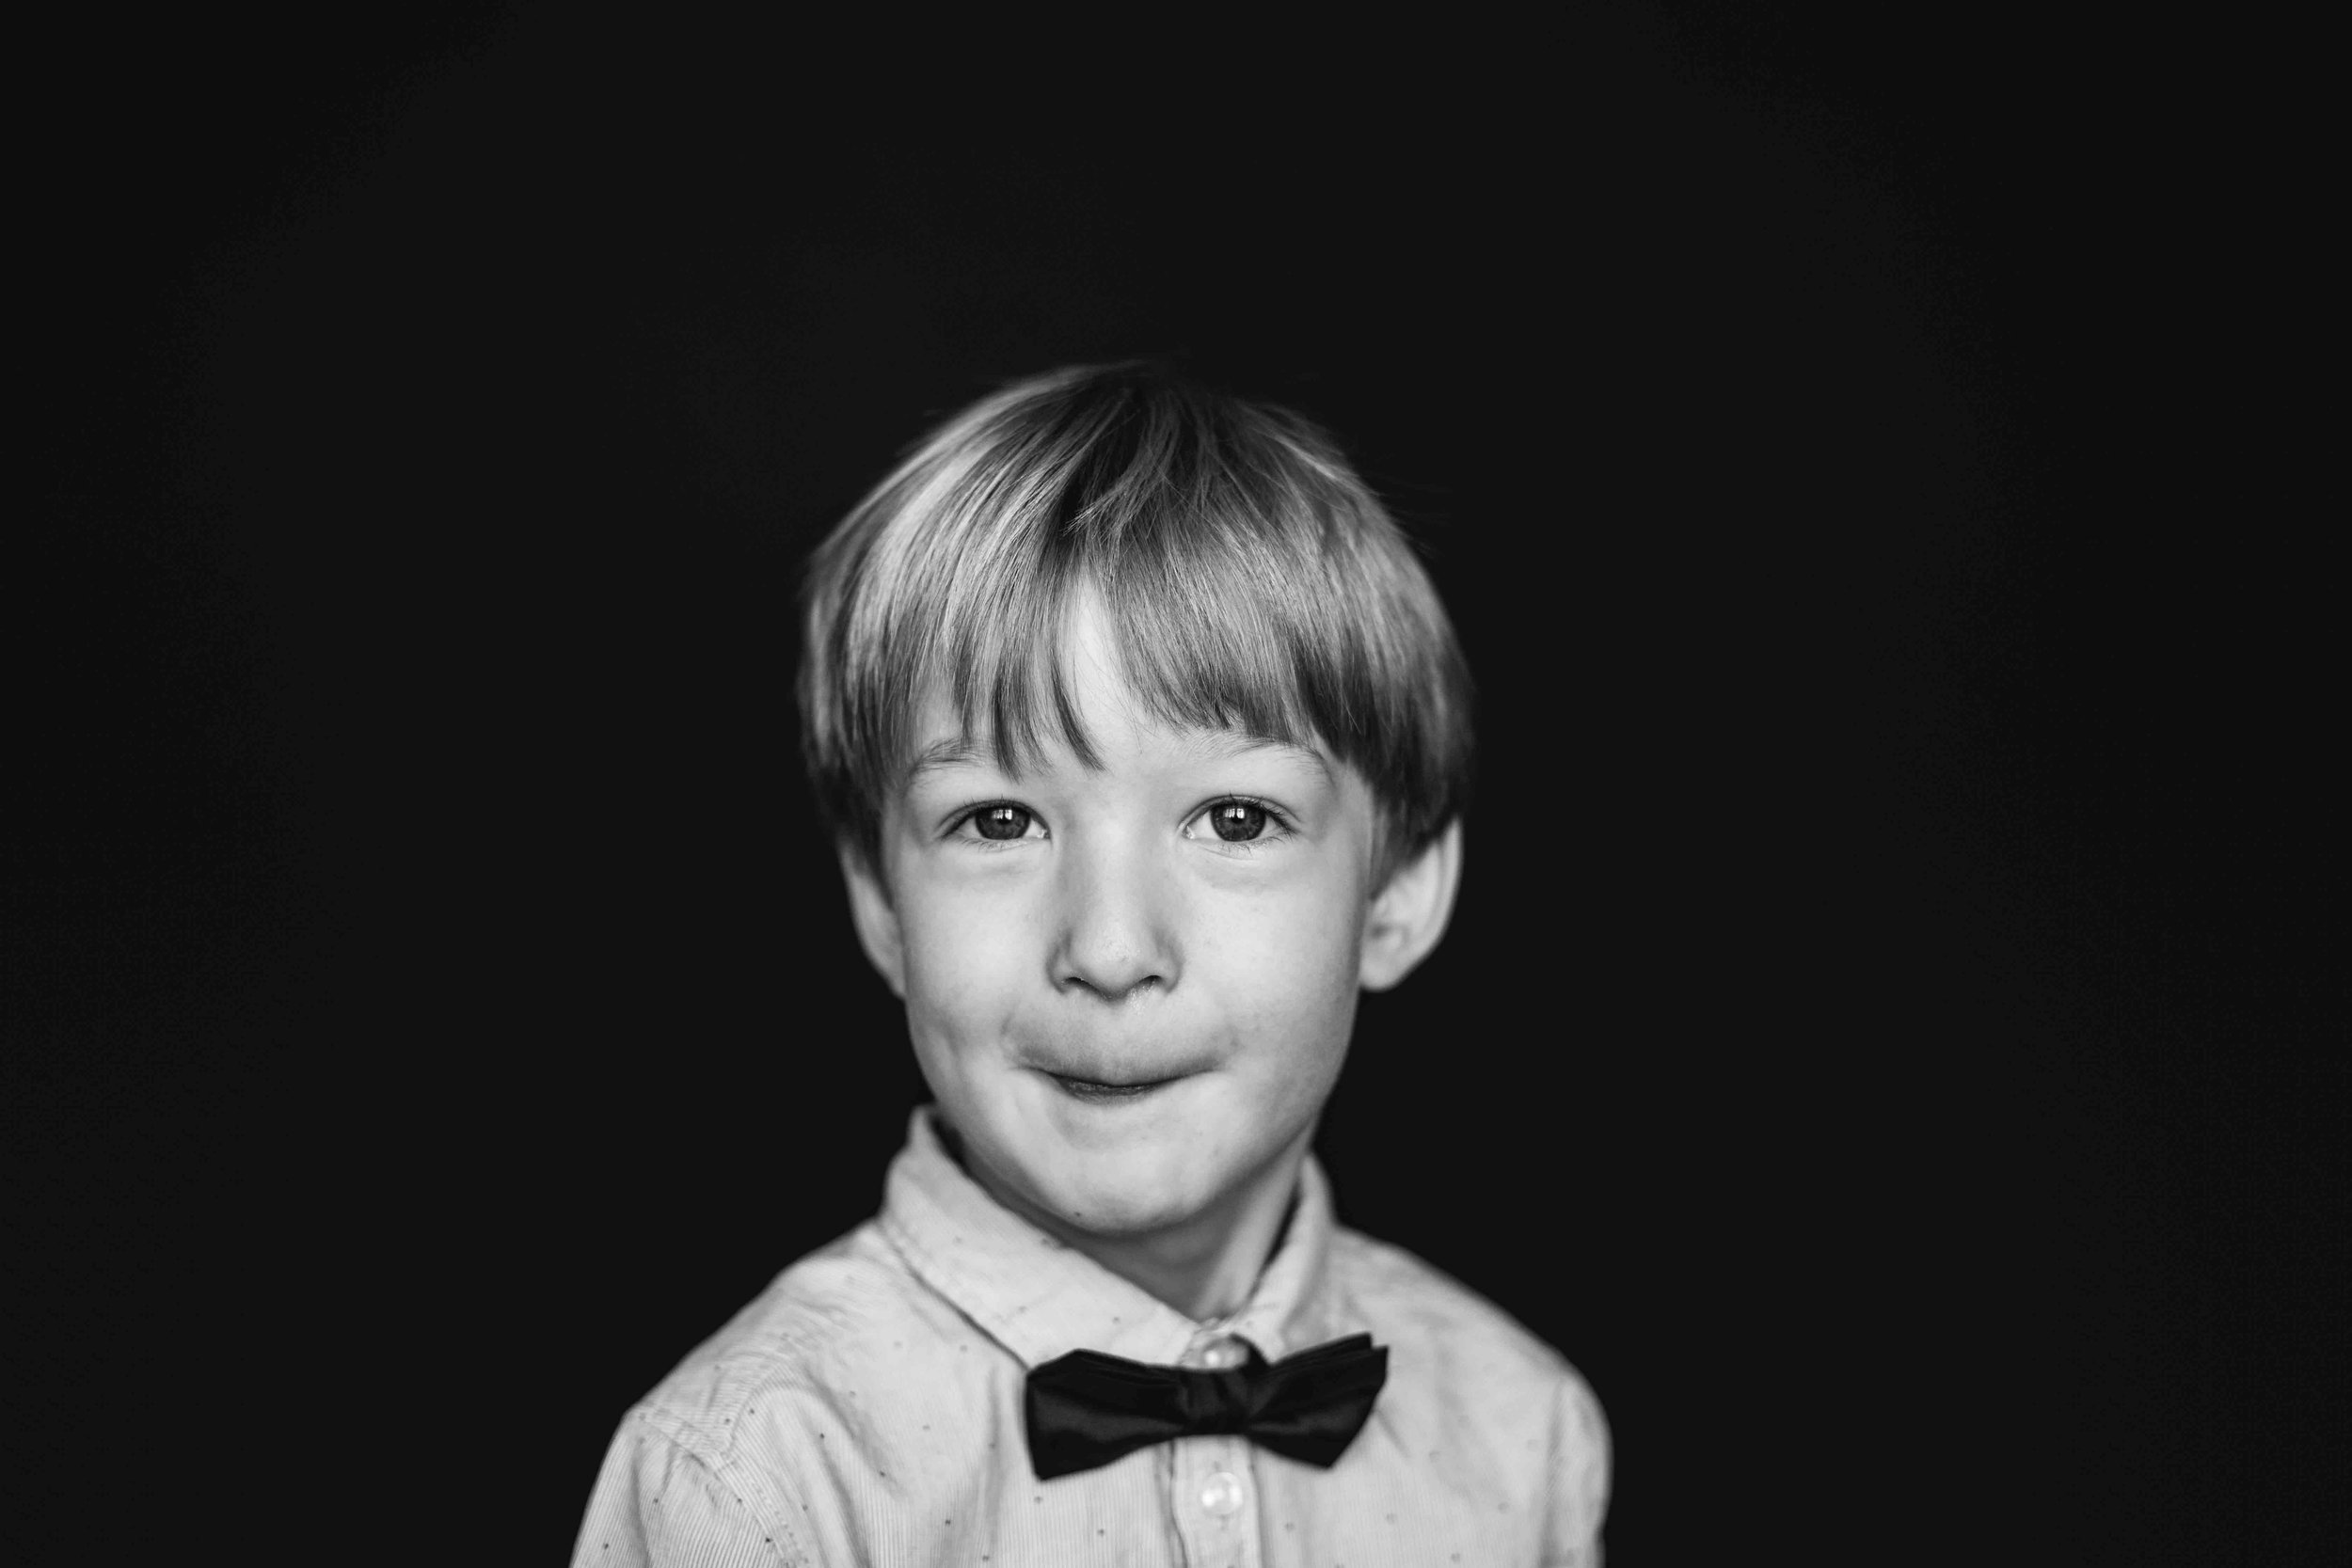 20180913_7718-- color--5day--preK--4yr----49----BLACK AND WHITE--357snowflake-pittsburgh-boutique-school-photography.jpg